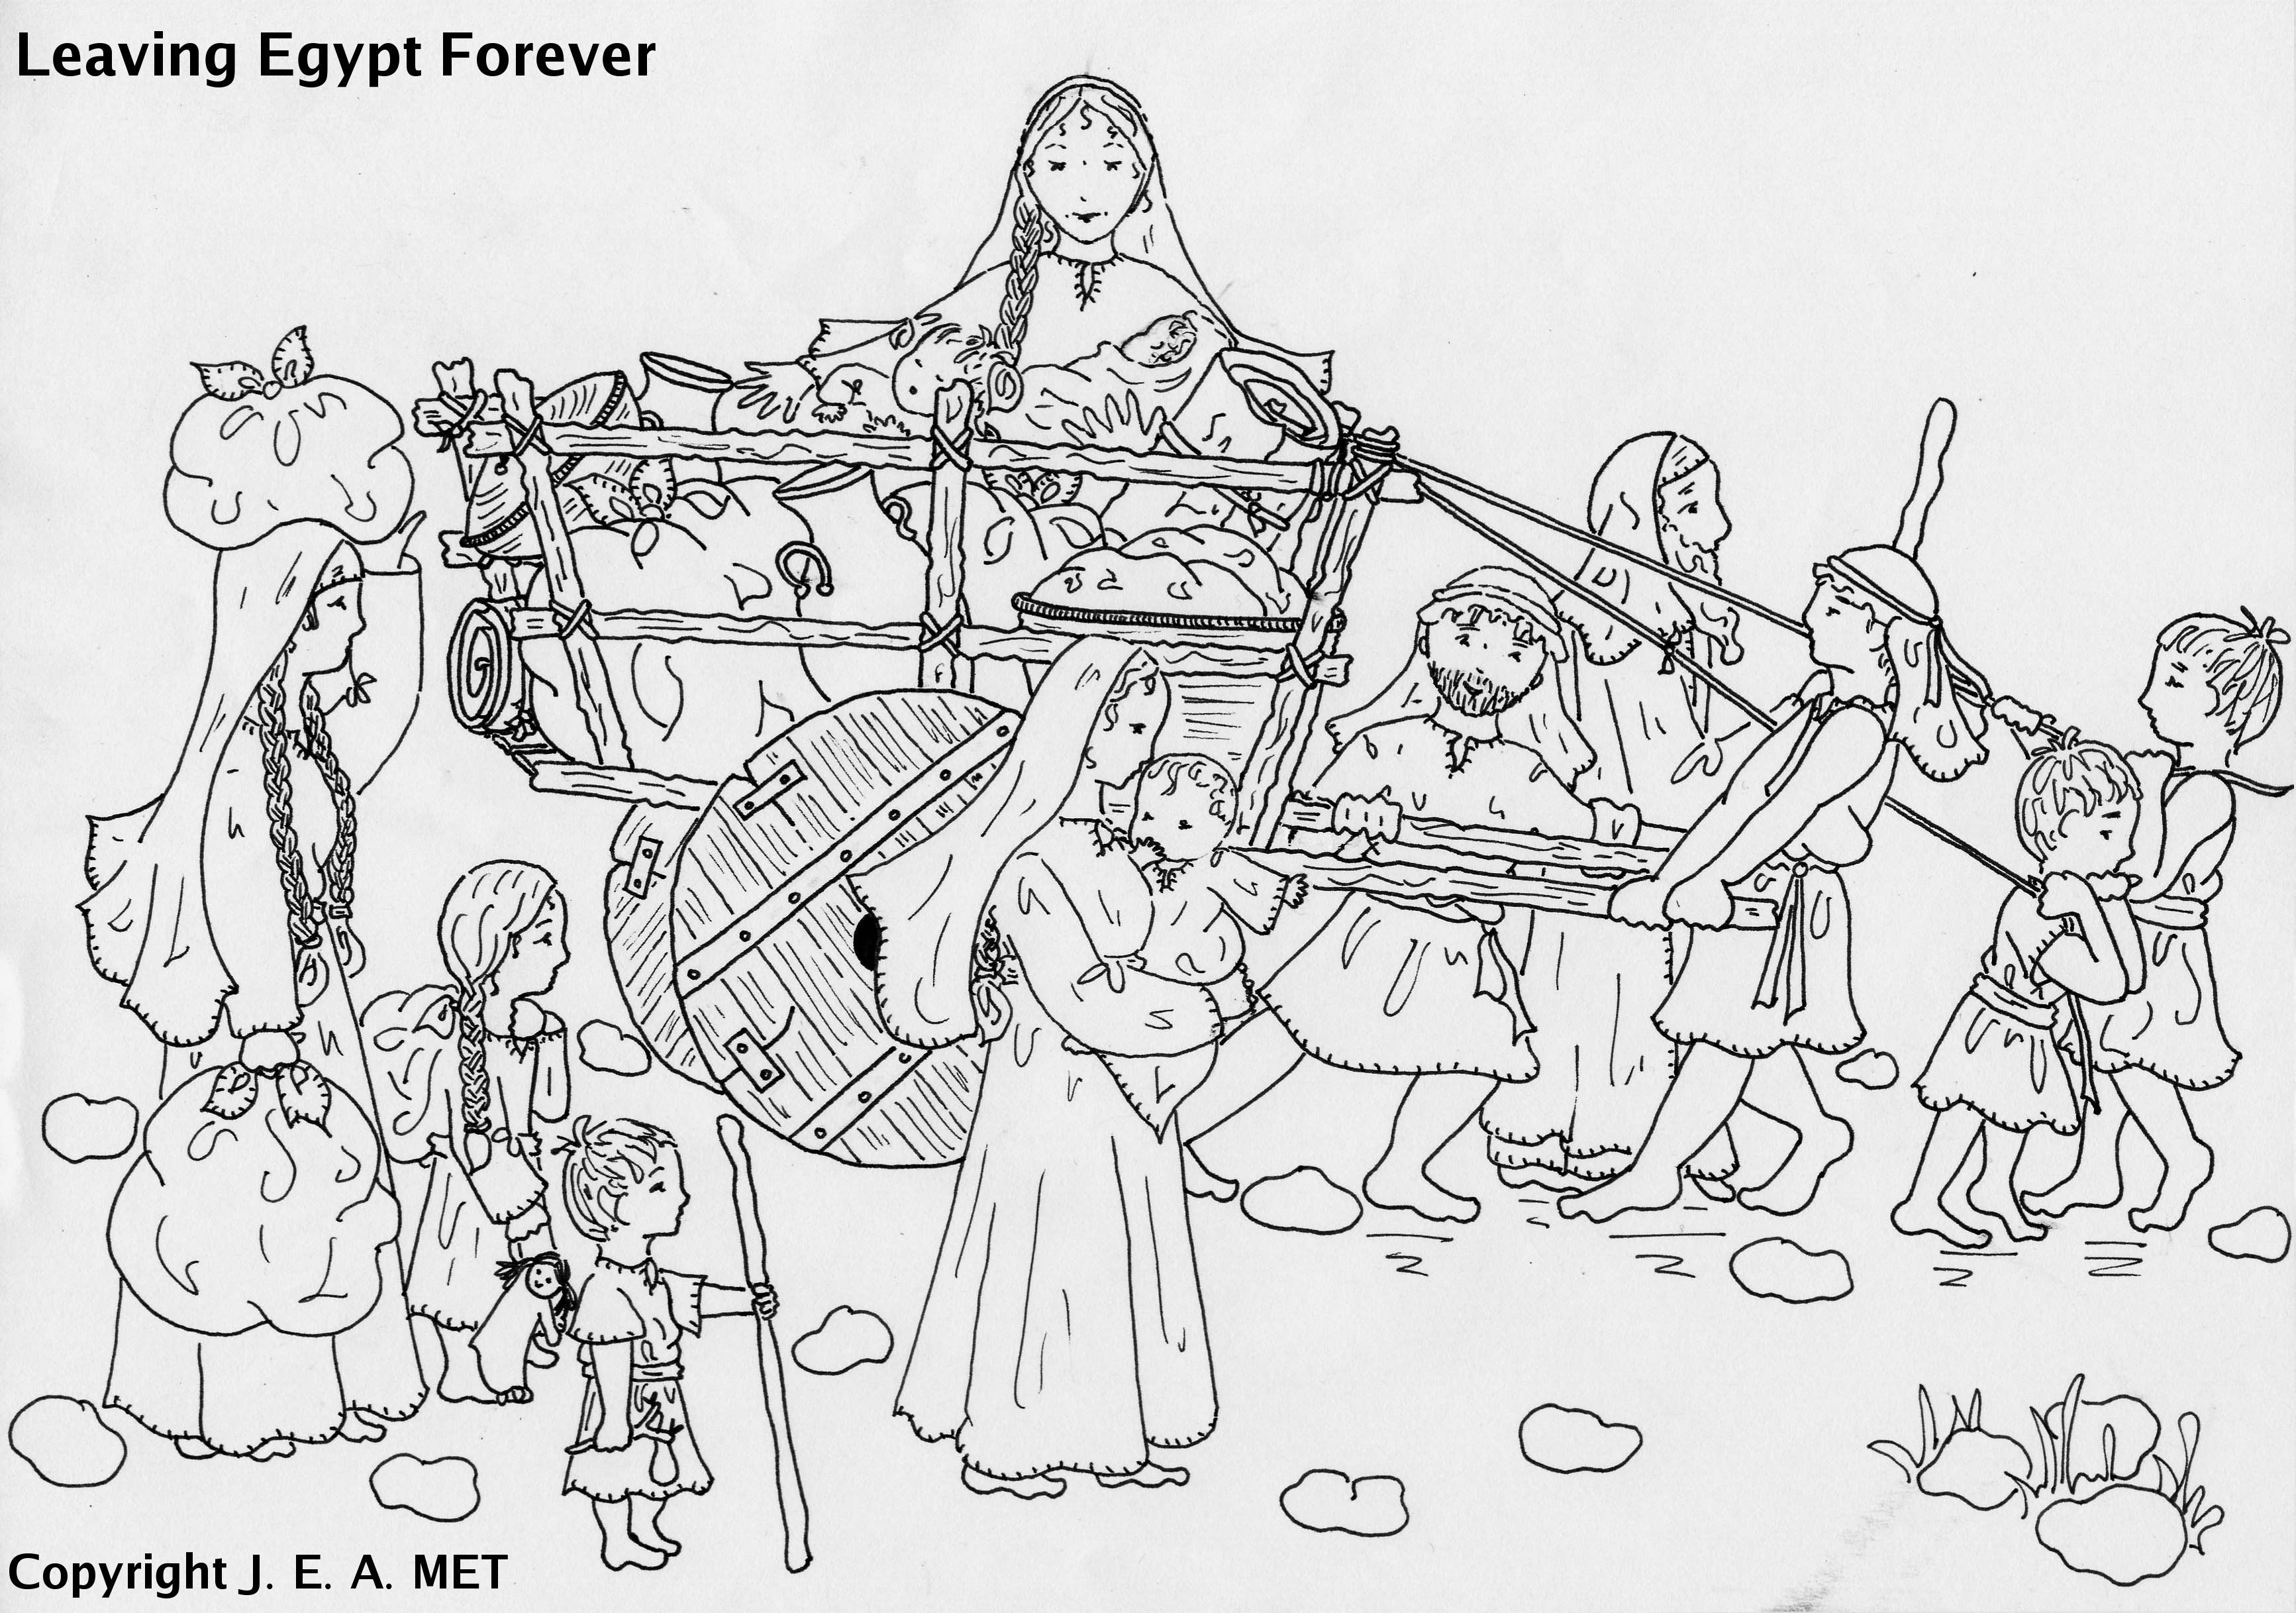 preschool bible story coloring pages Collection-The Bible Israelites Leaving Egypt Coloring Pages 3-o